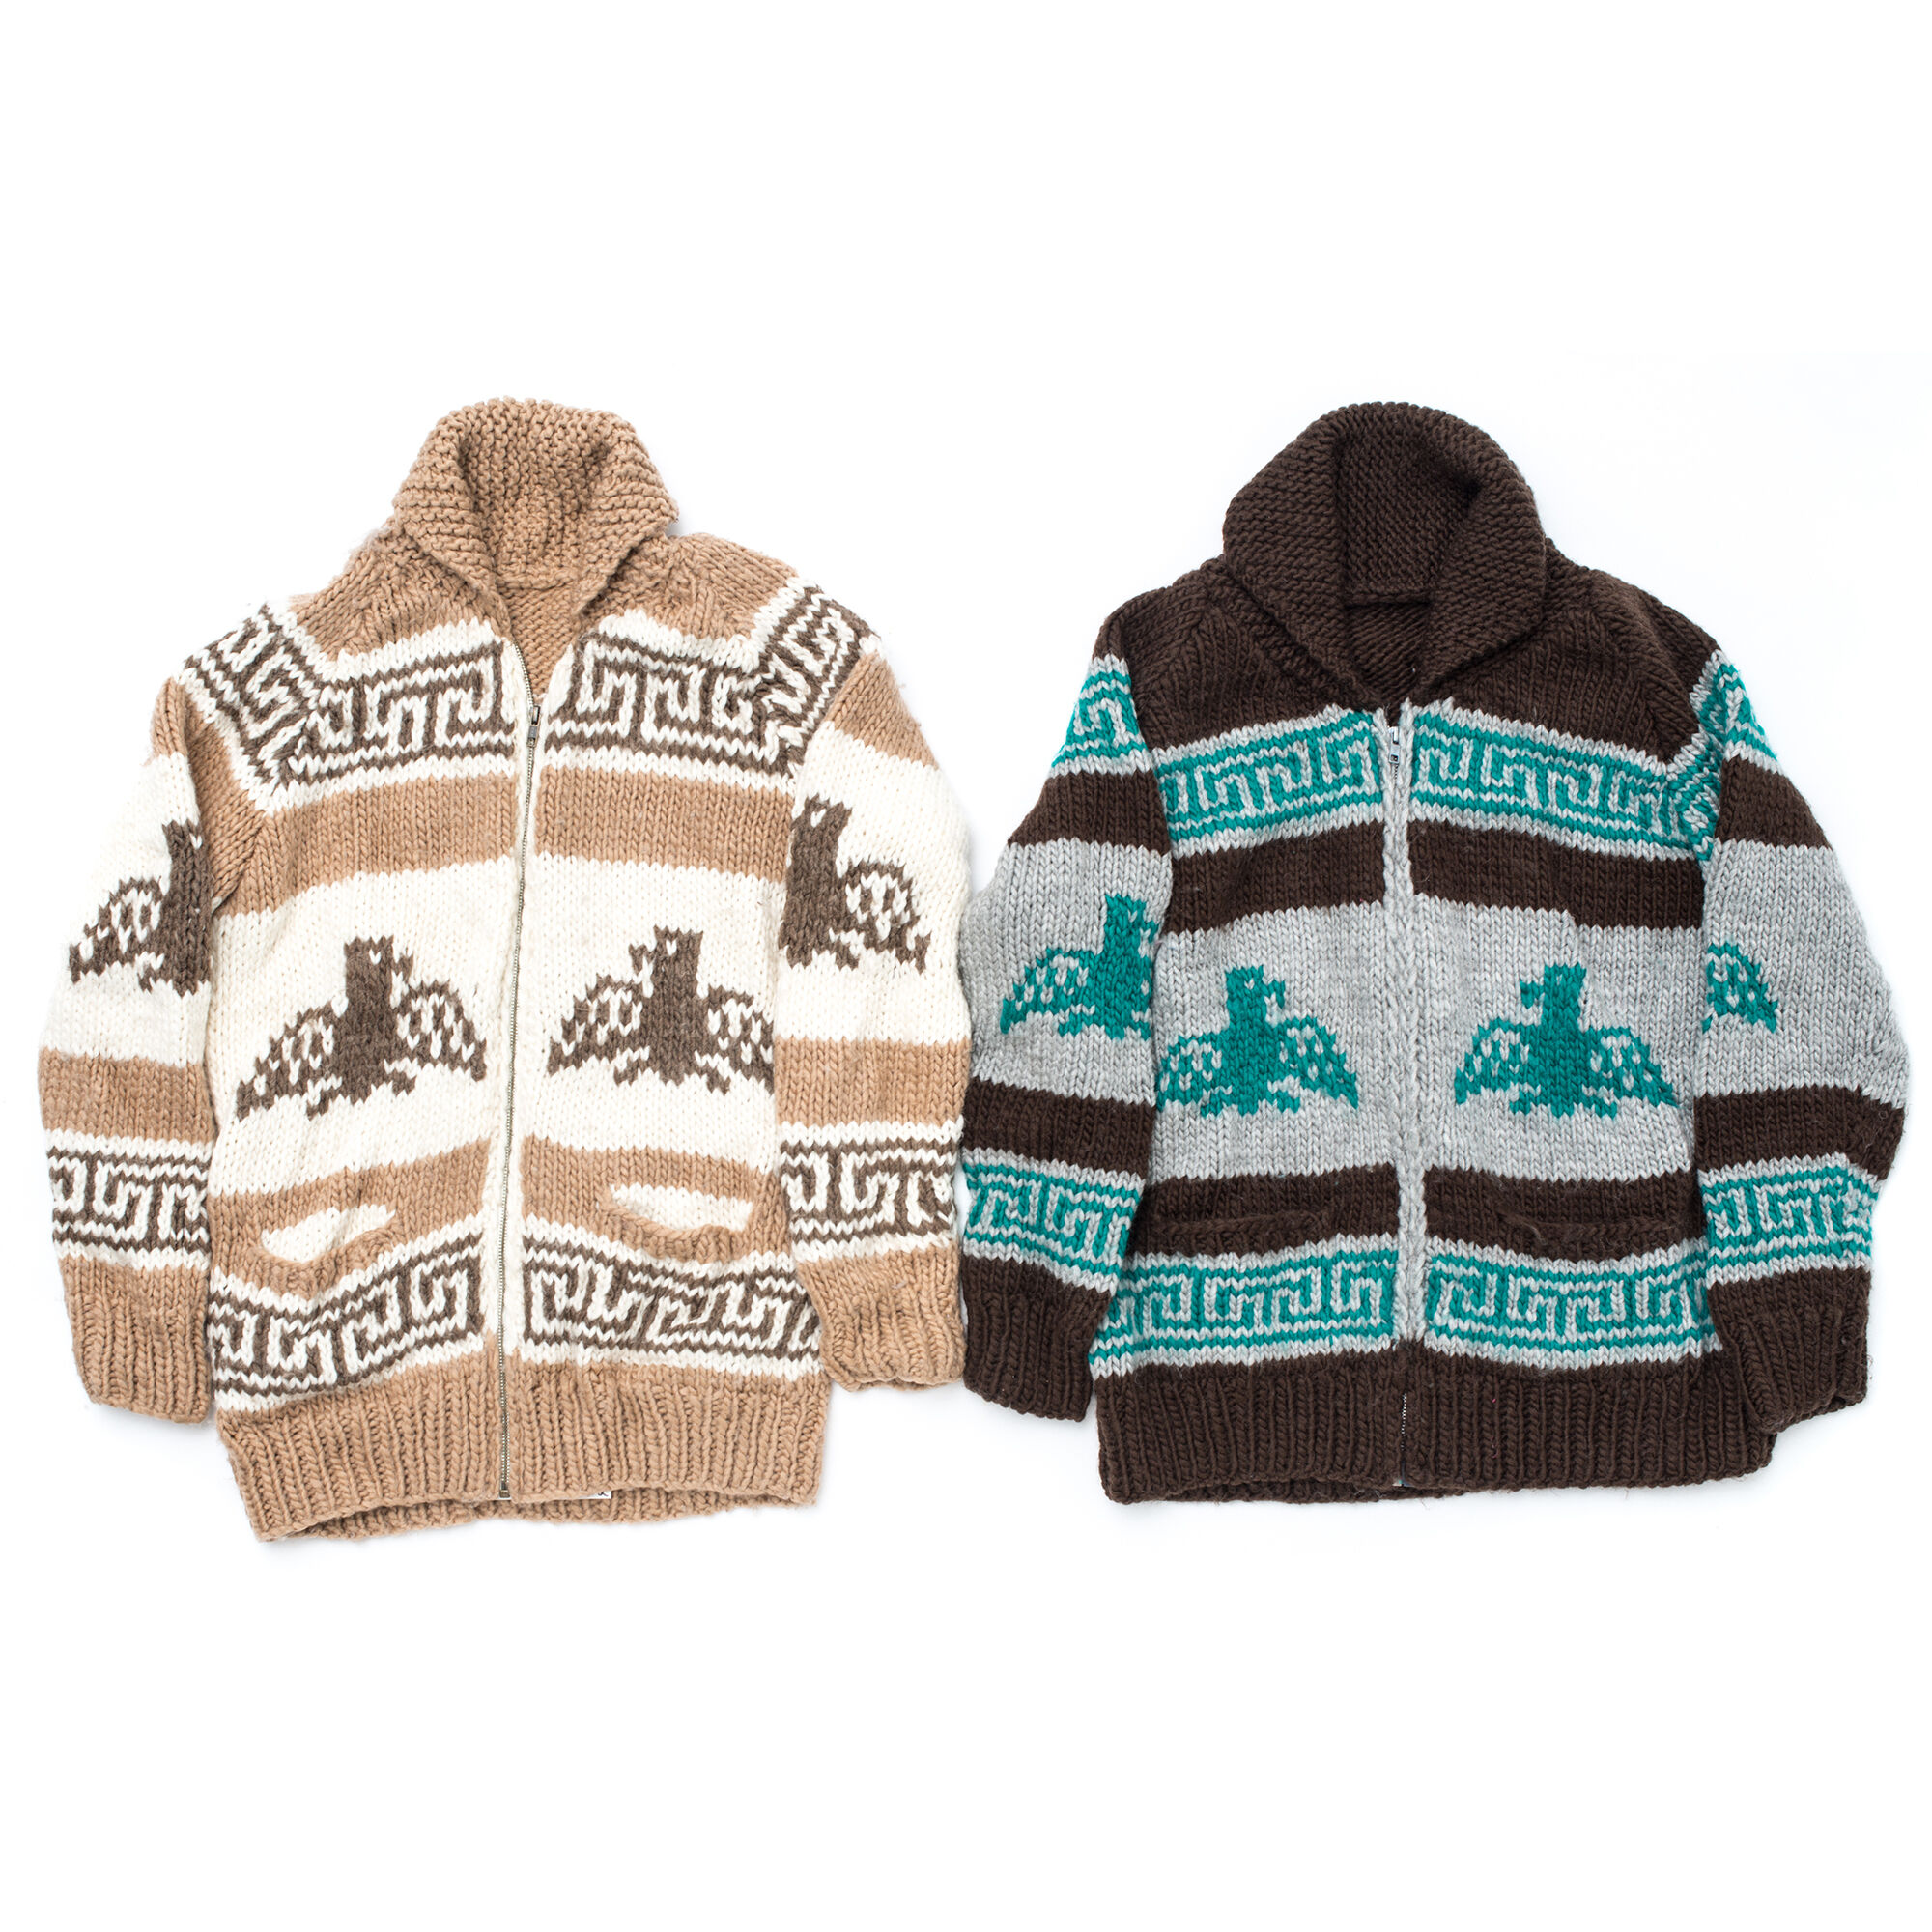 Bernat I'm the Dude Jacket, M | Yarnspirations